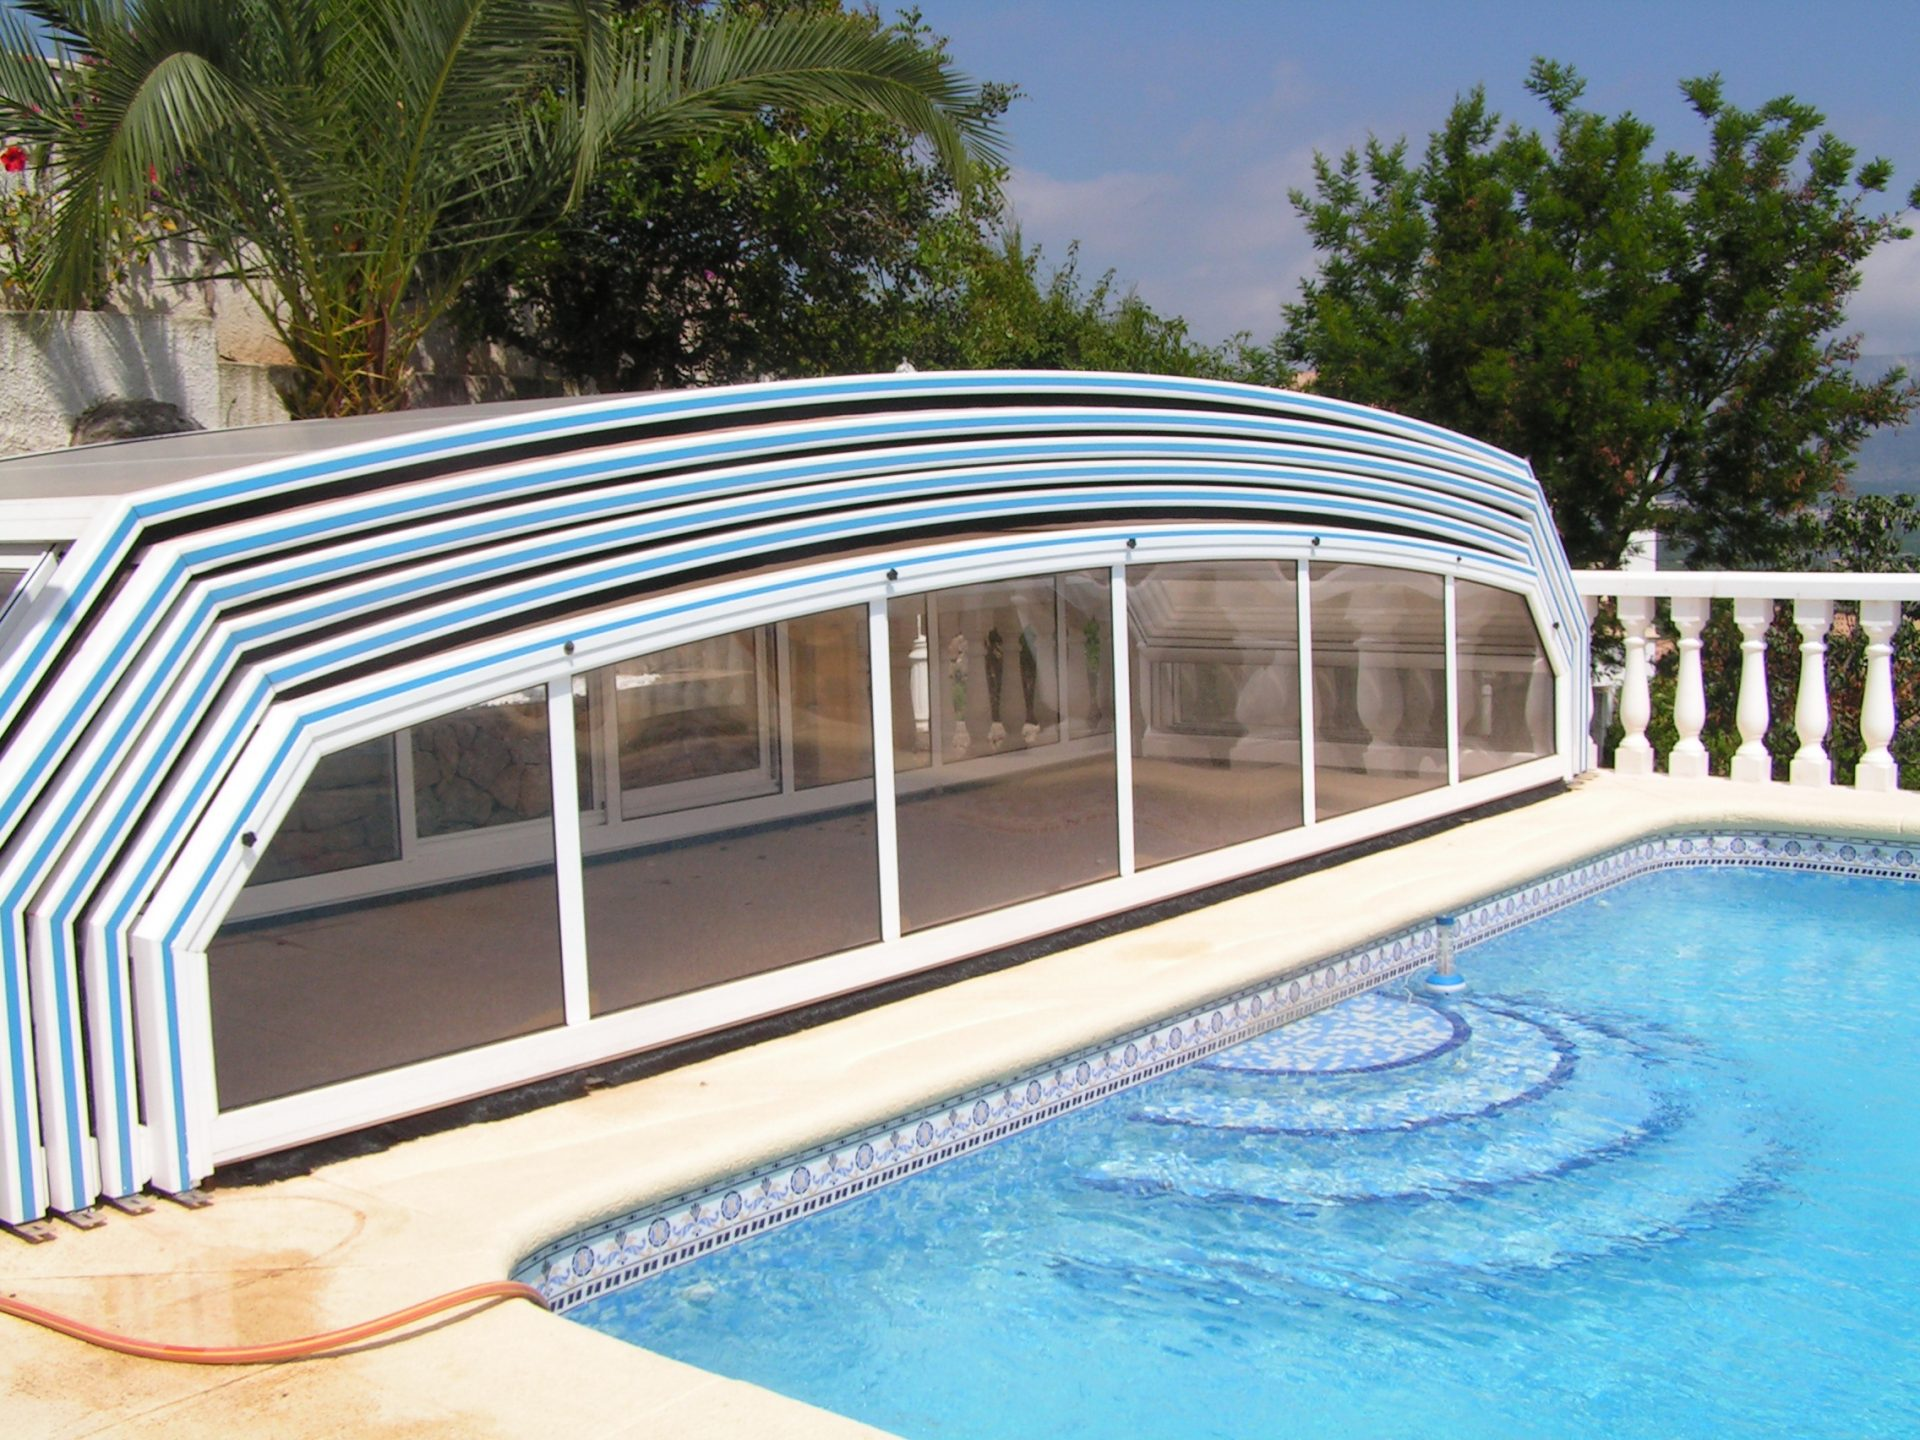 Abri piscine paris t lescopique sur roulette for Abris de piscine occasion